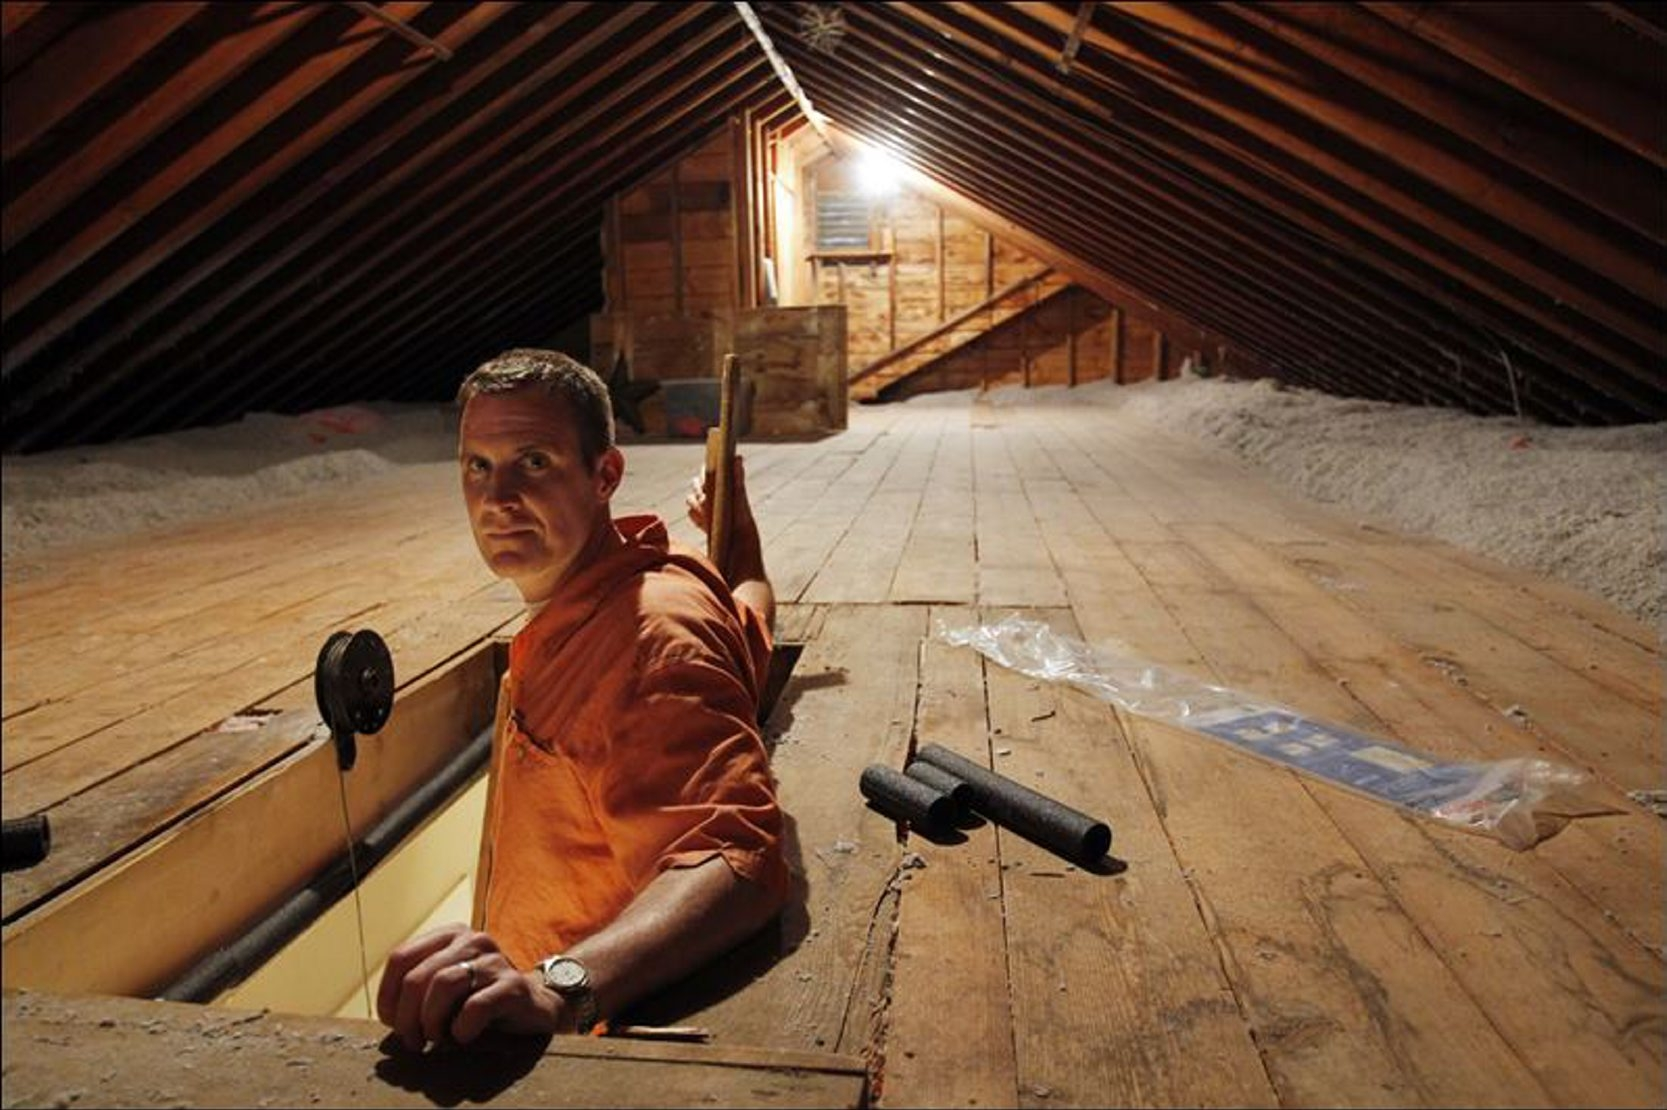 Installing insulation to the attic as an energy-saving measure may qualify for a tax credit this year.